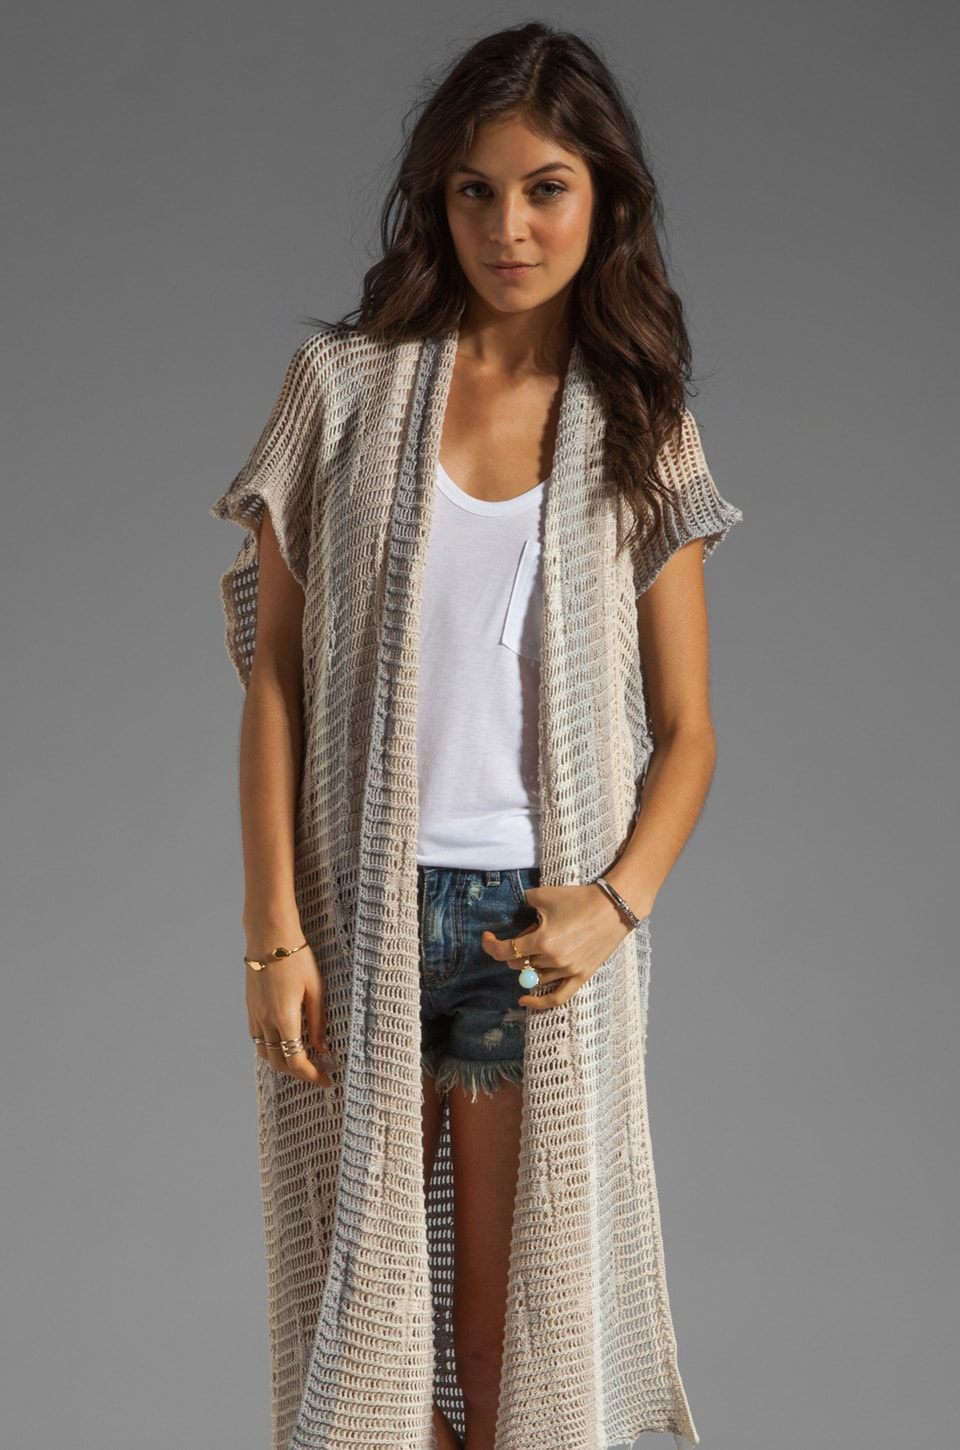 Goddis Willa Cardigan in Boardwalk